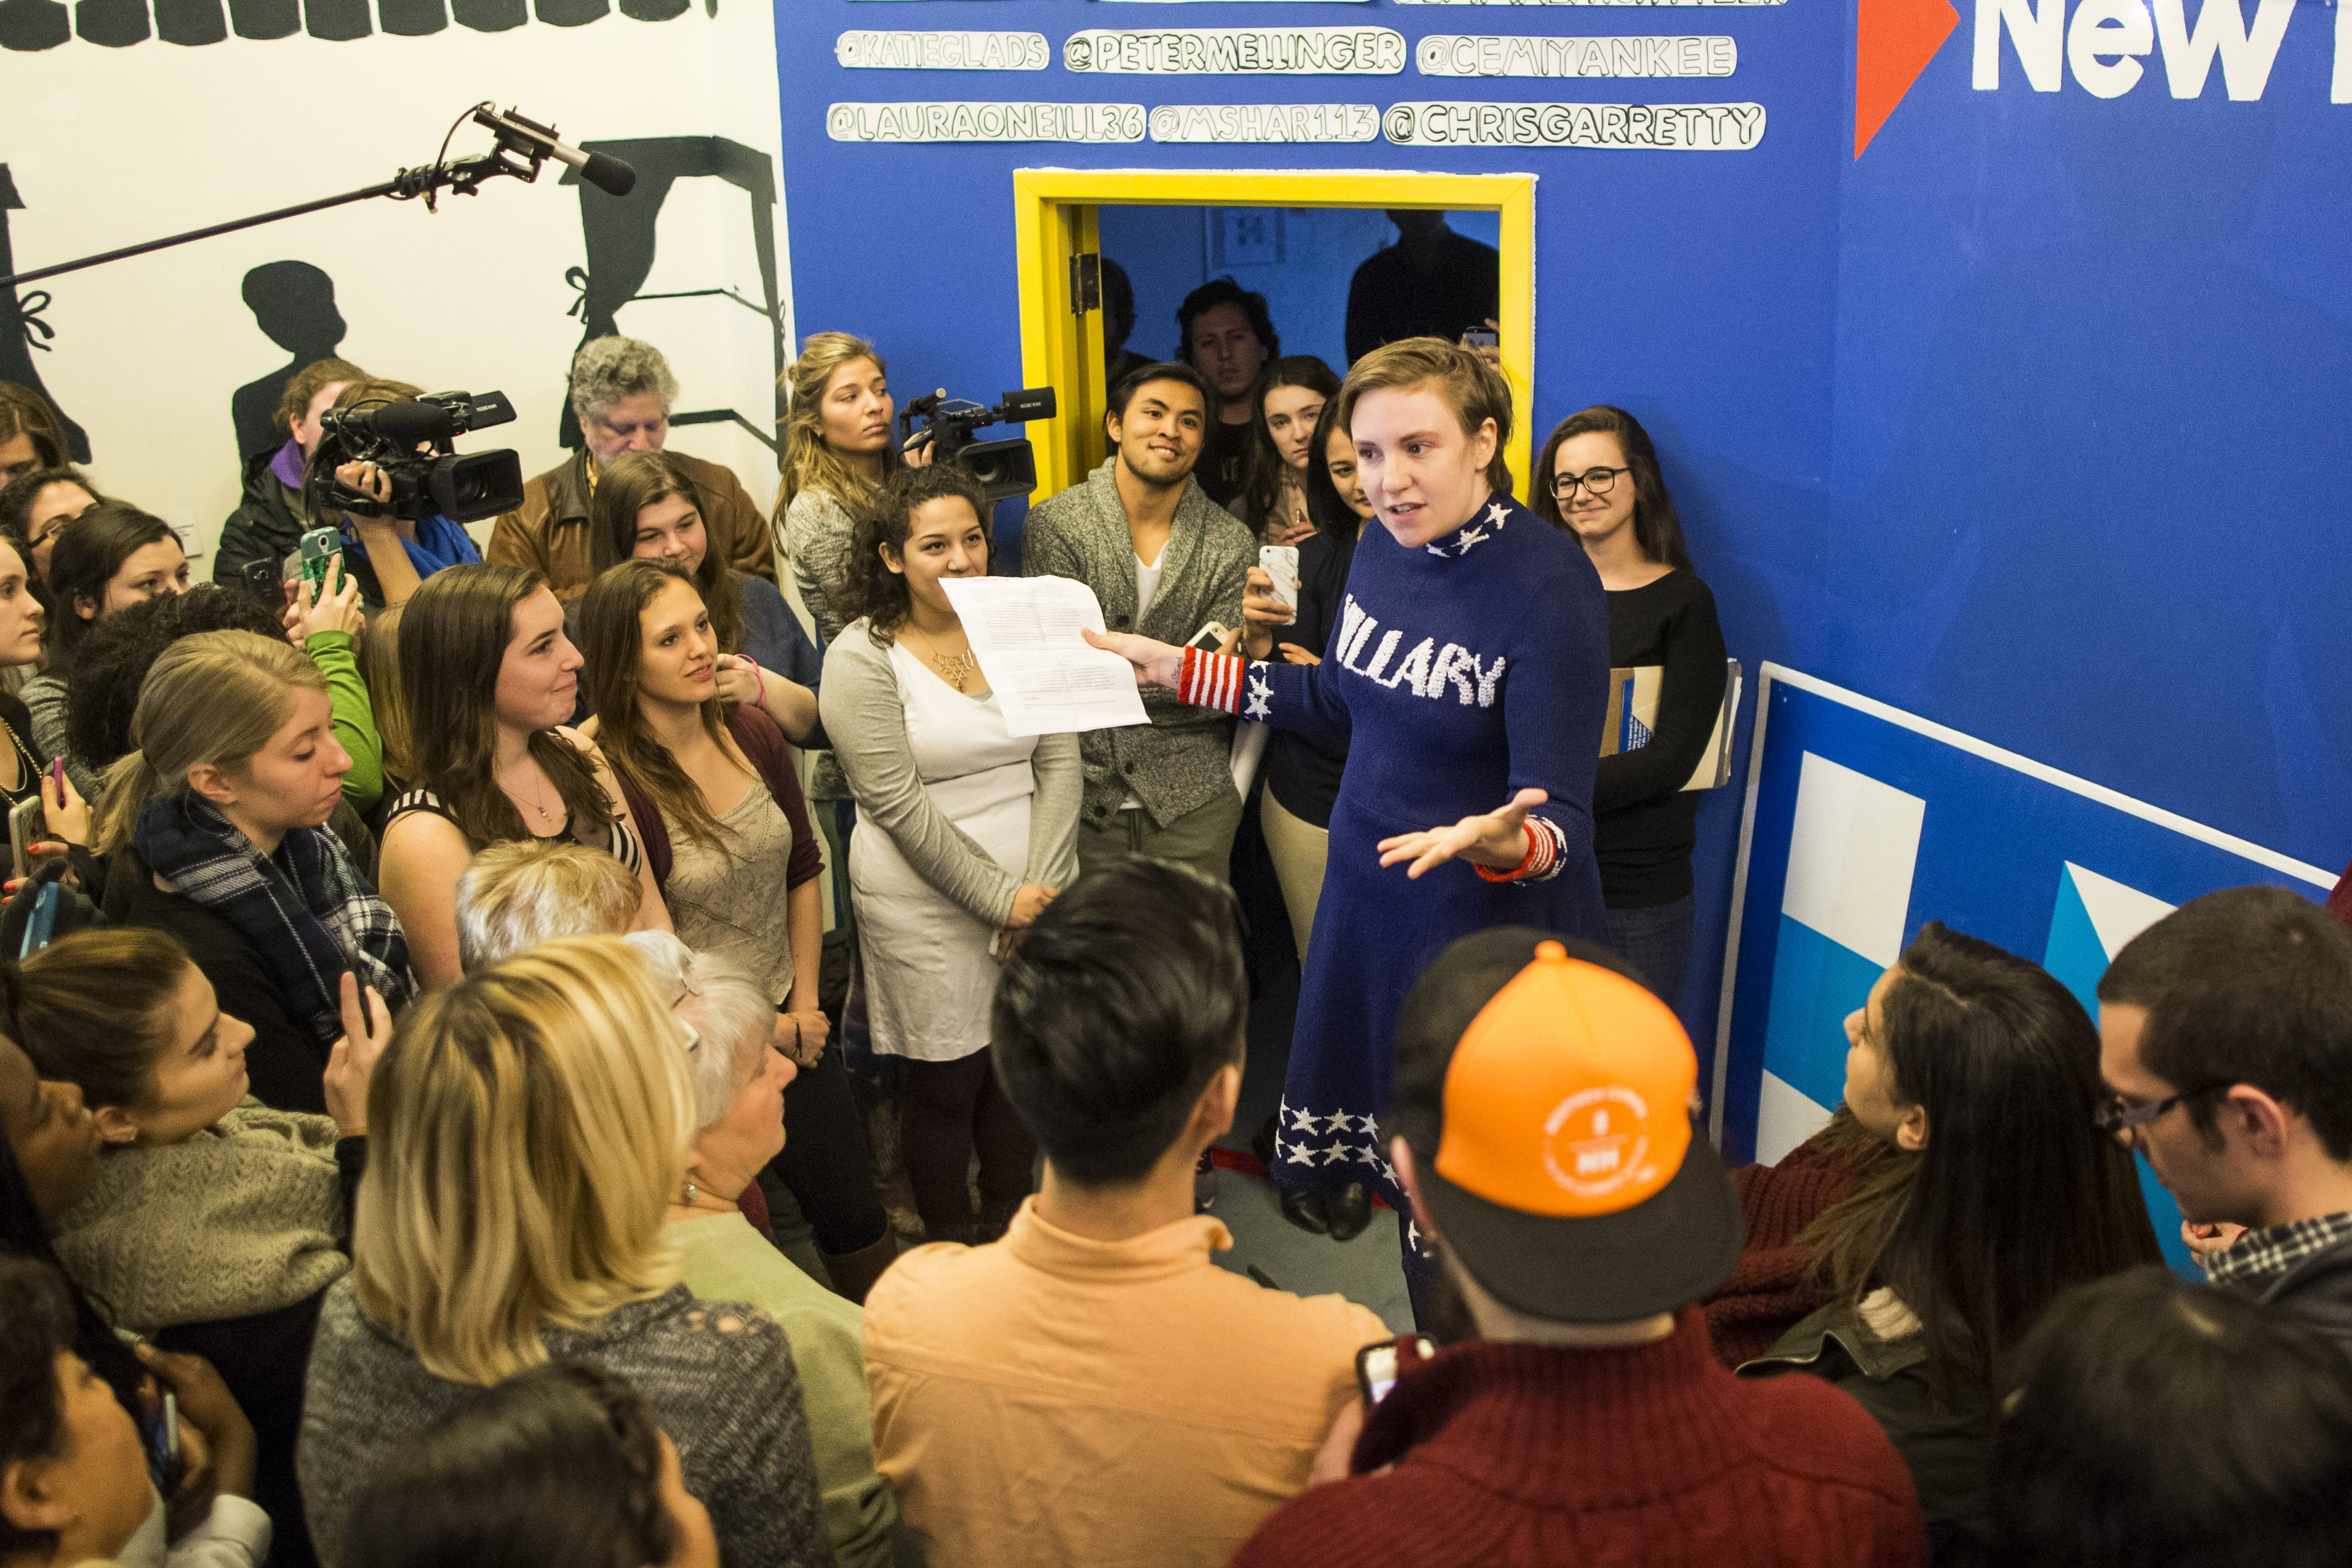 Lena Dunham speaks to a crowd at a Hillary Clinton campaign office in Manchester, NH on Jan. 8, 2016.